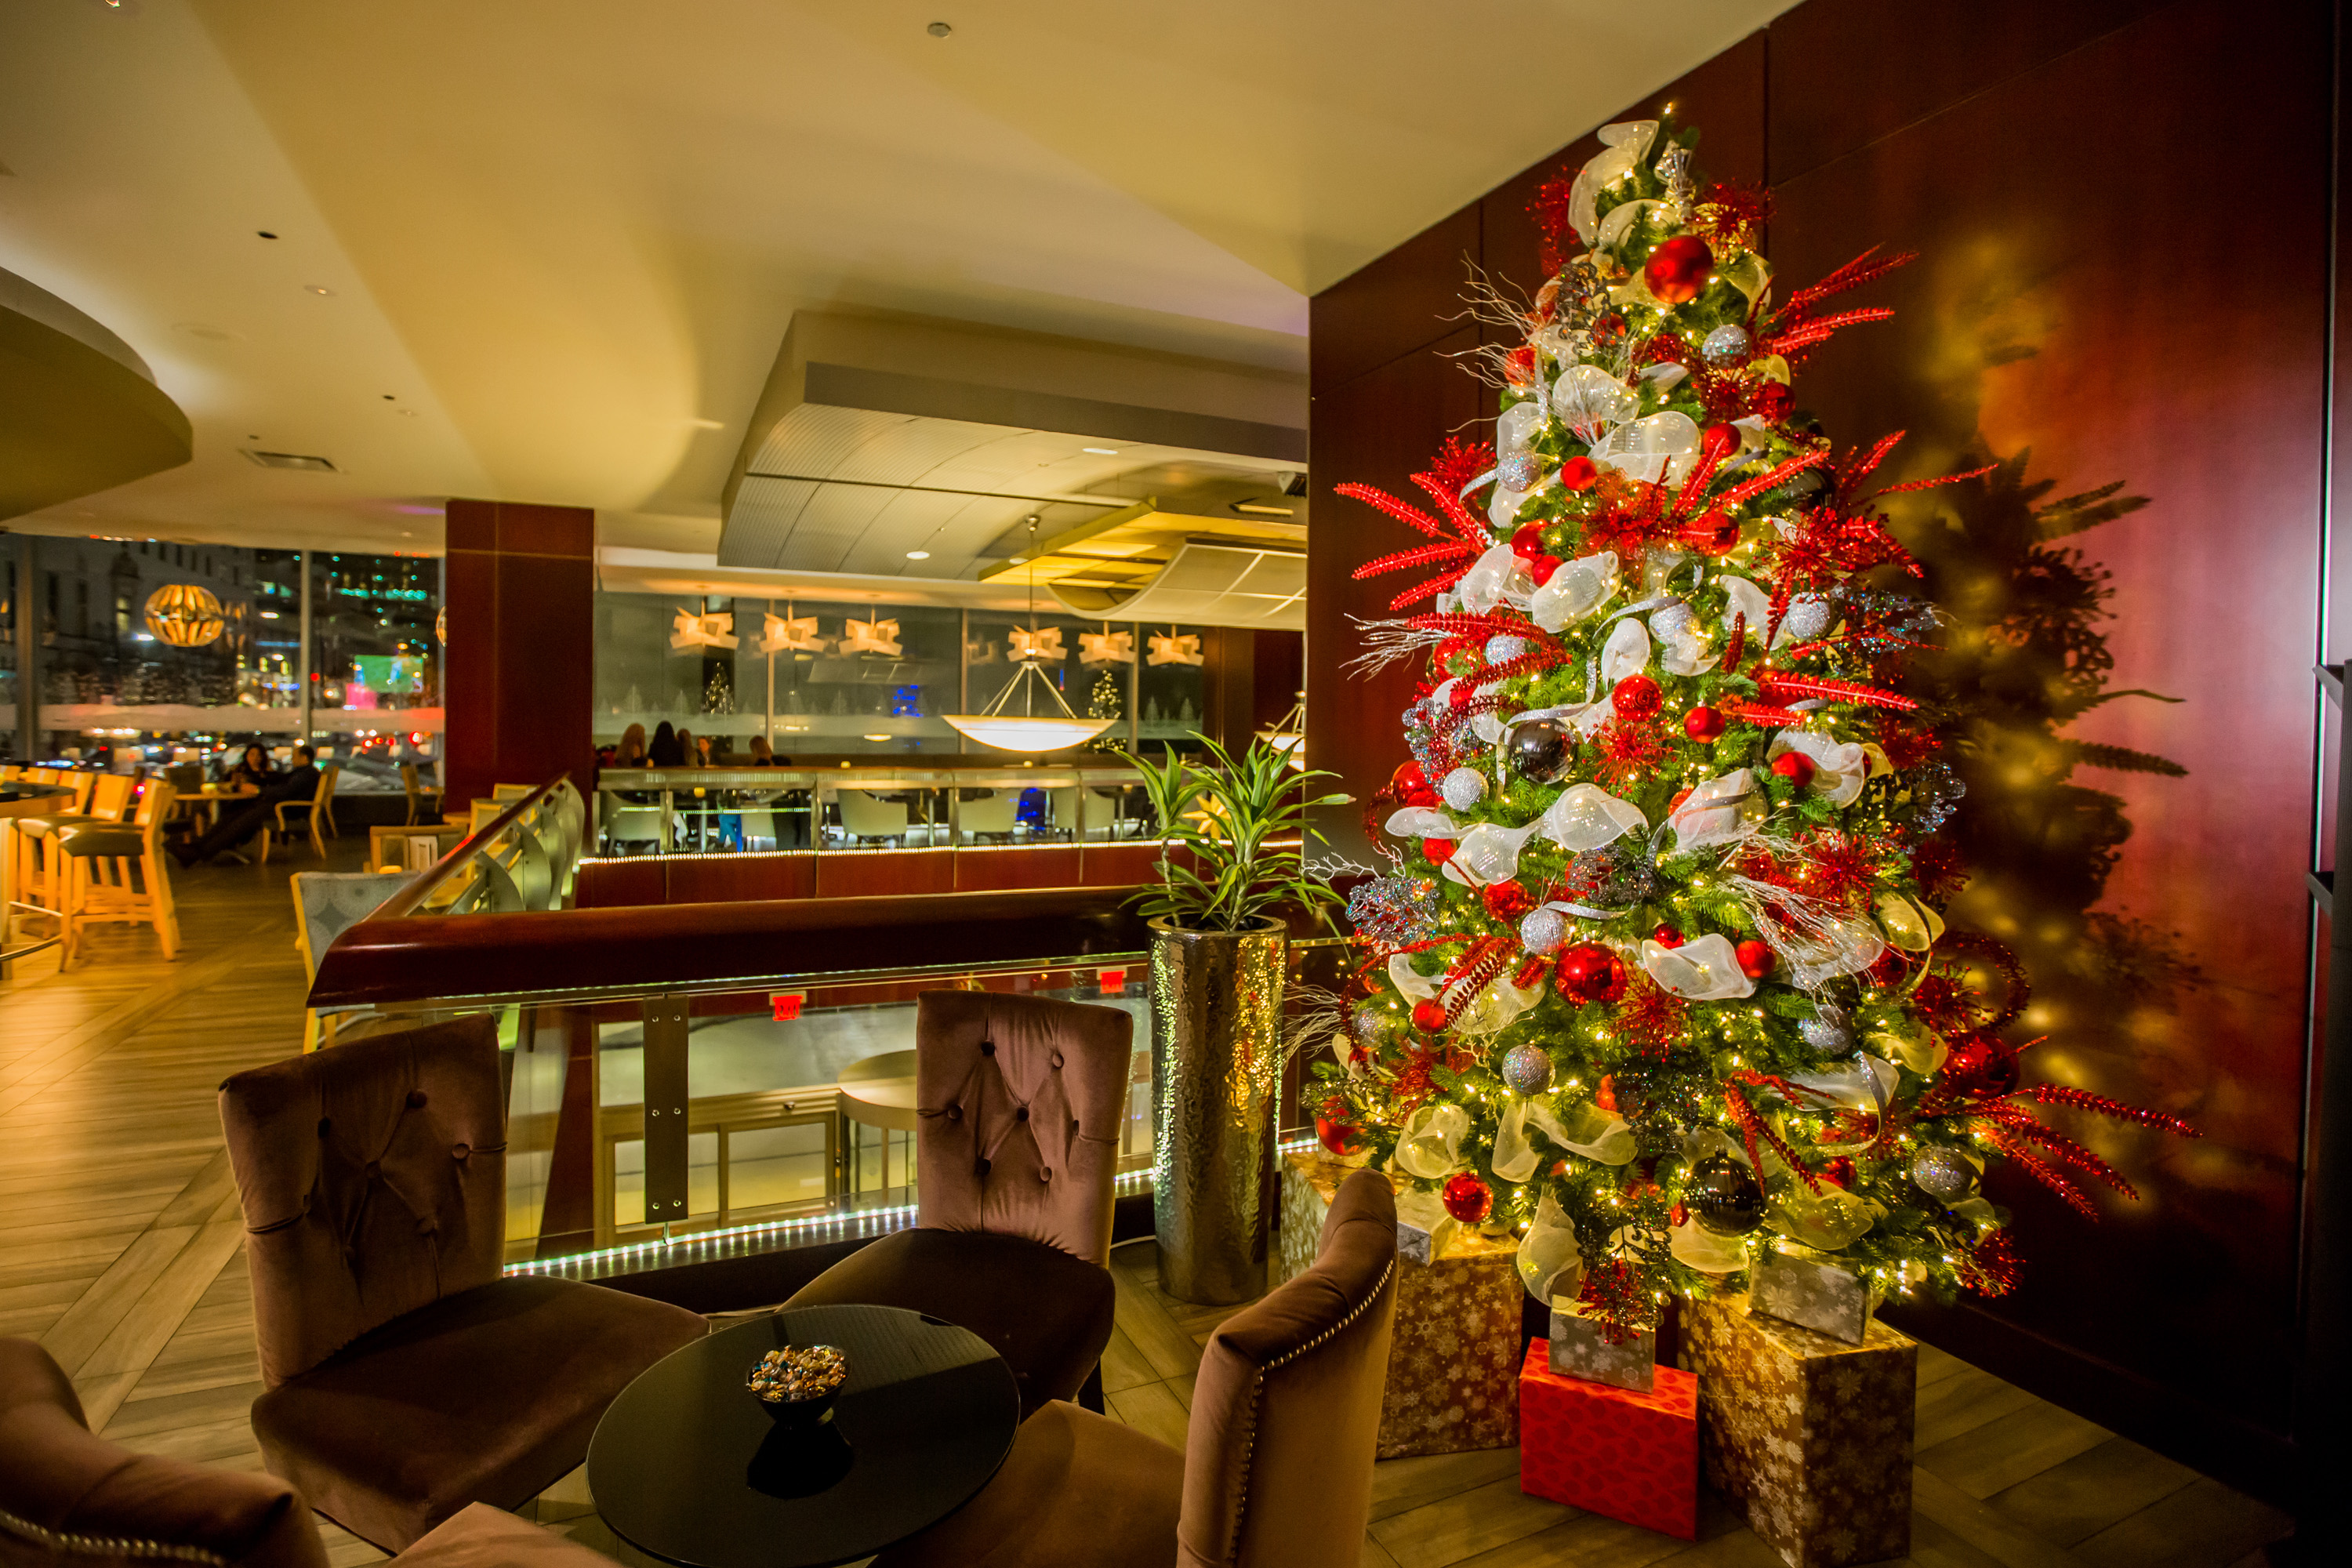 Magical Holiday Designs at the Hyatt Regency Vancouver Hotel